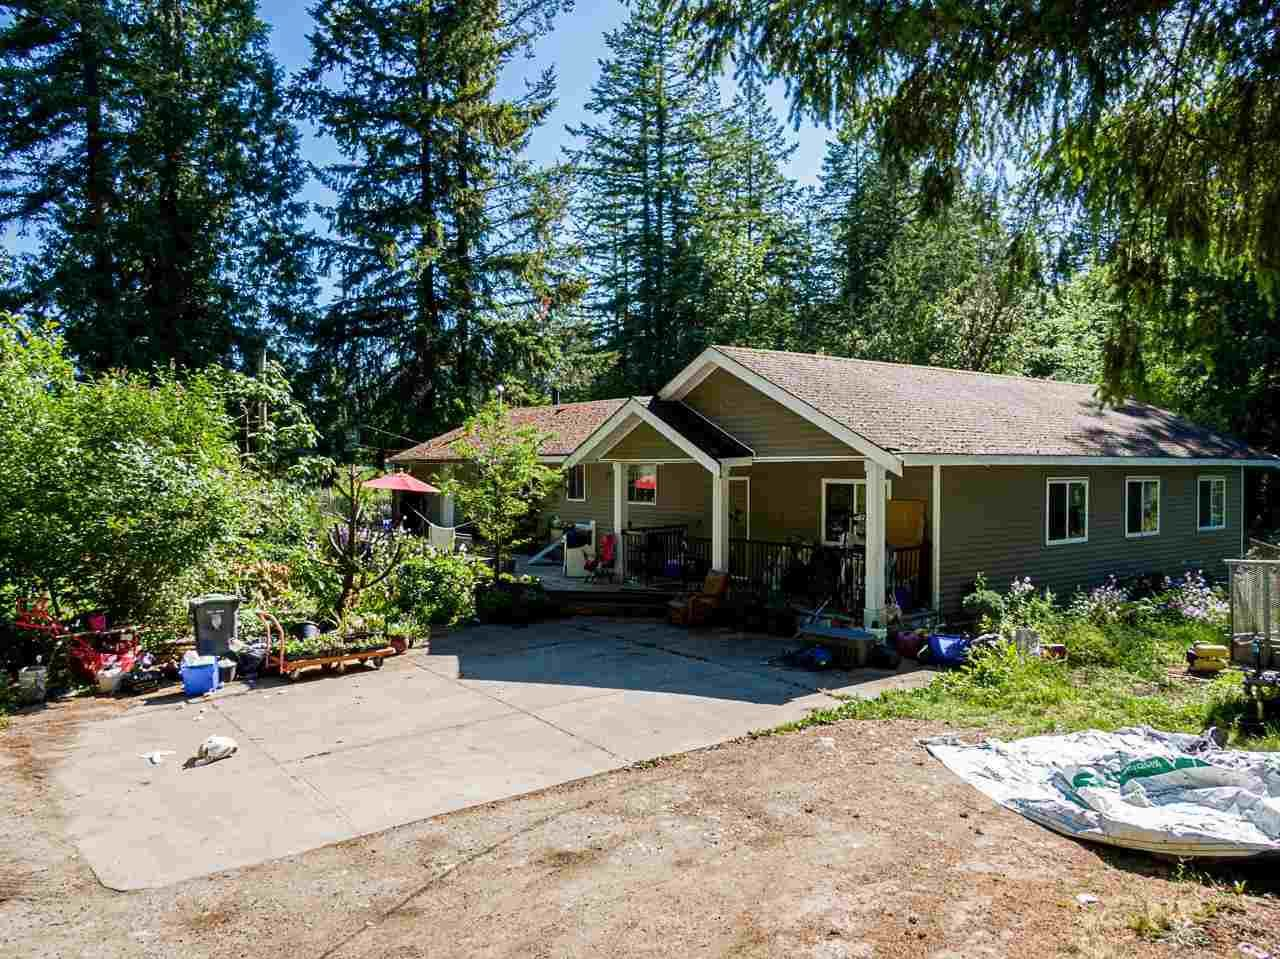 Main Photo: 19860 30 Avenue in Langley: Brookswood Langley House for sale : MLS®# R2590552